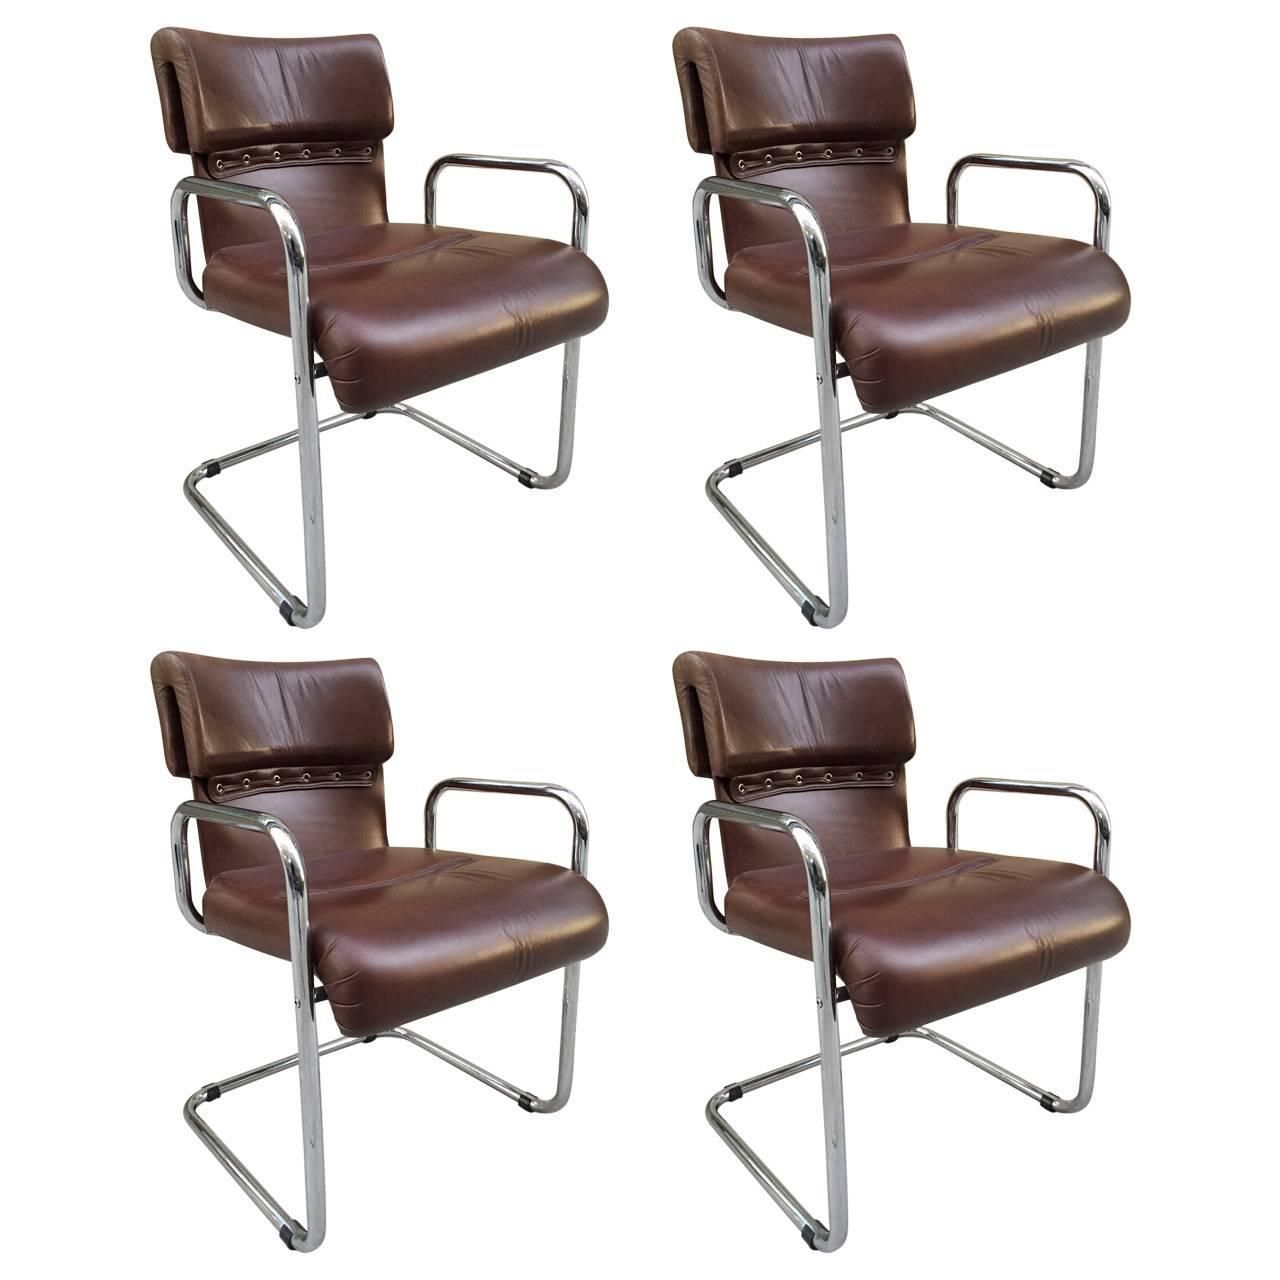 Four Leather Chairs by Guido Faleschini for Mariani/Pace Collection ca.1970's